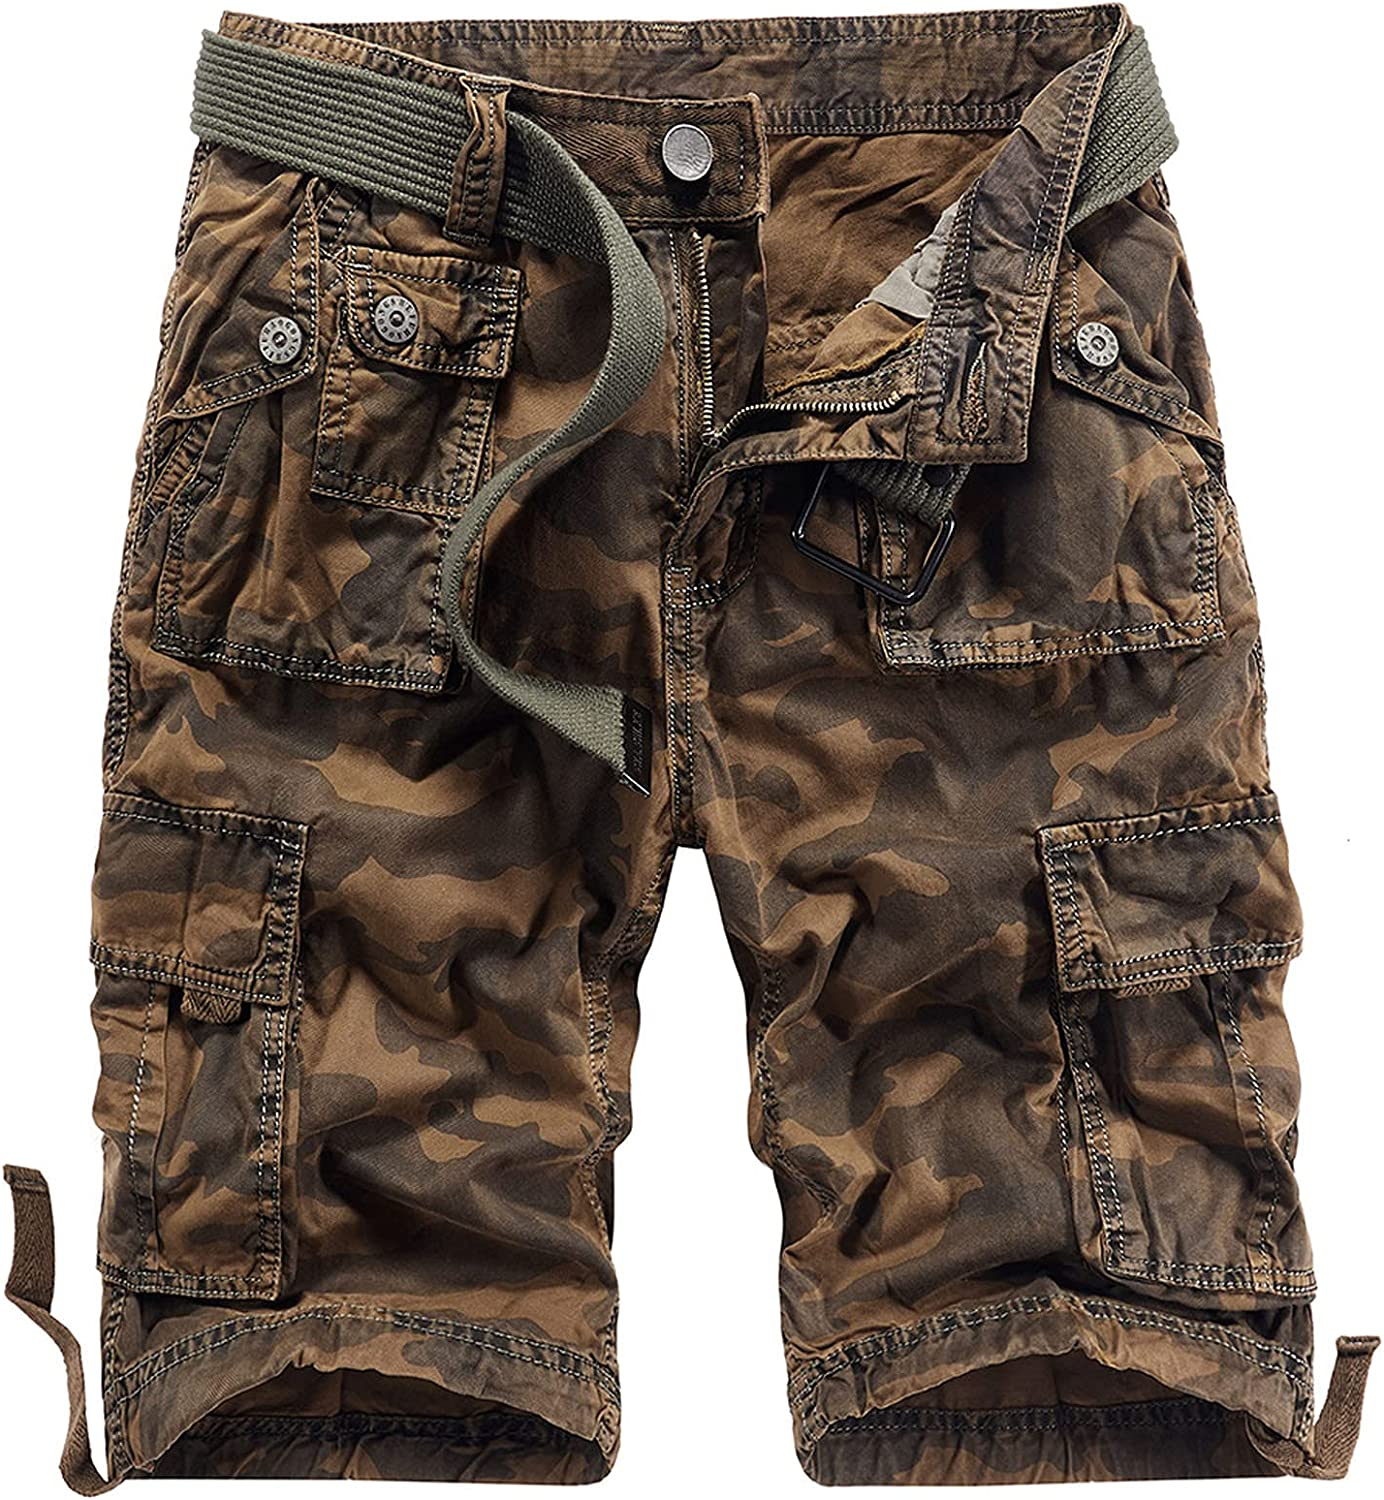 B dressy Men Summer Casual Loose Camouflage Cargo Shorts Multi-Pocket 100% Cotton Street Military Knee-Length Beach-Brown Camouflage-30